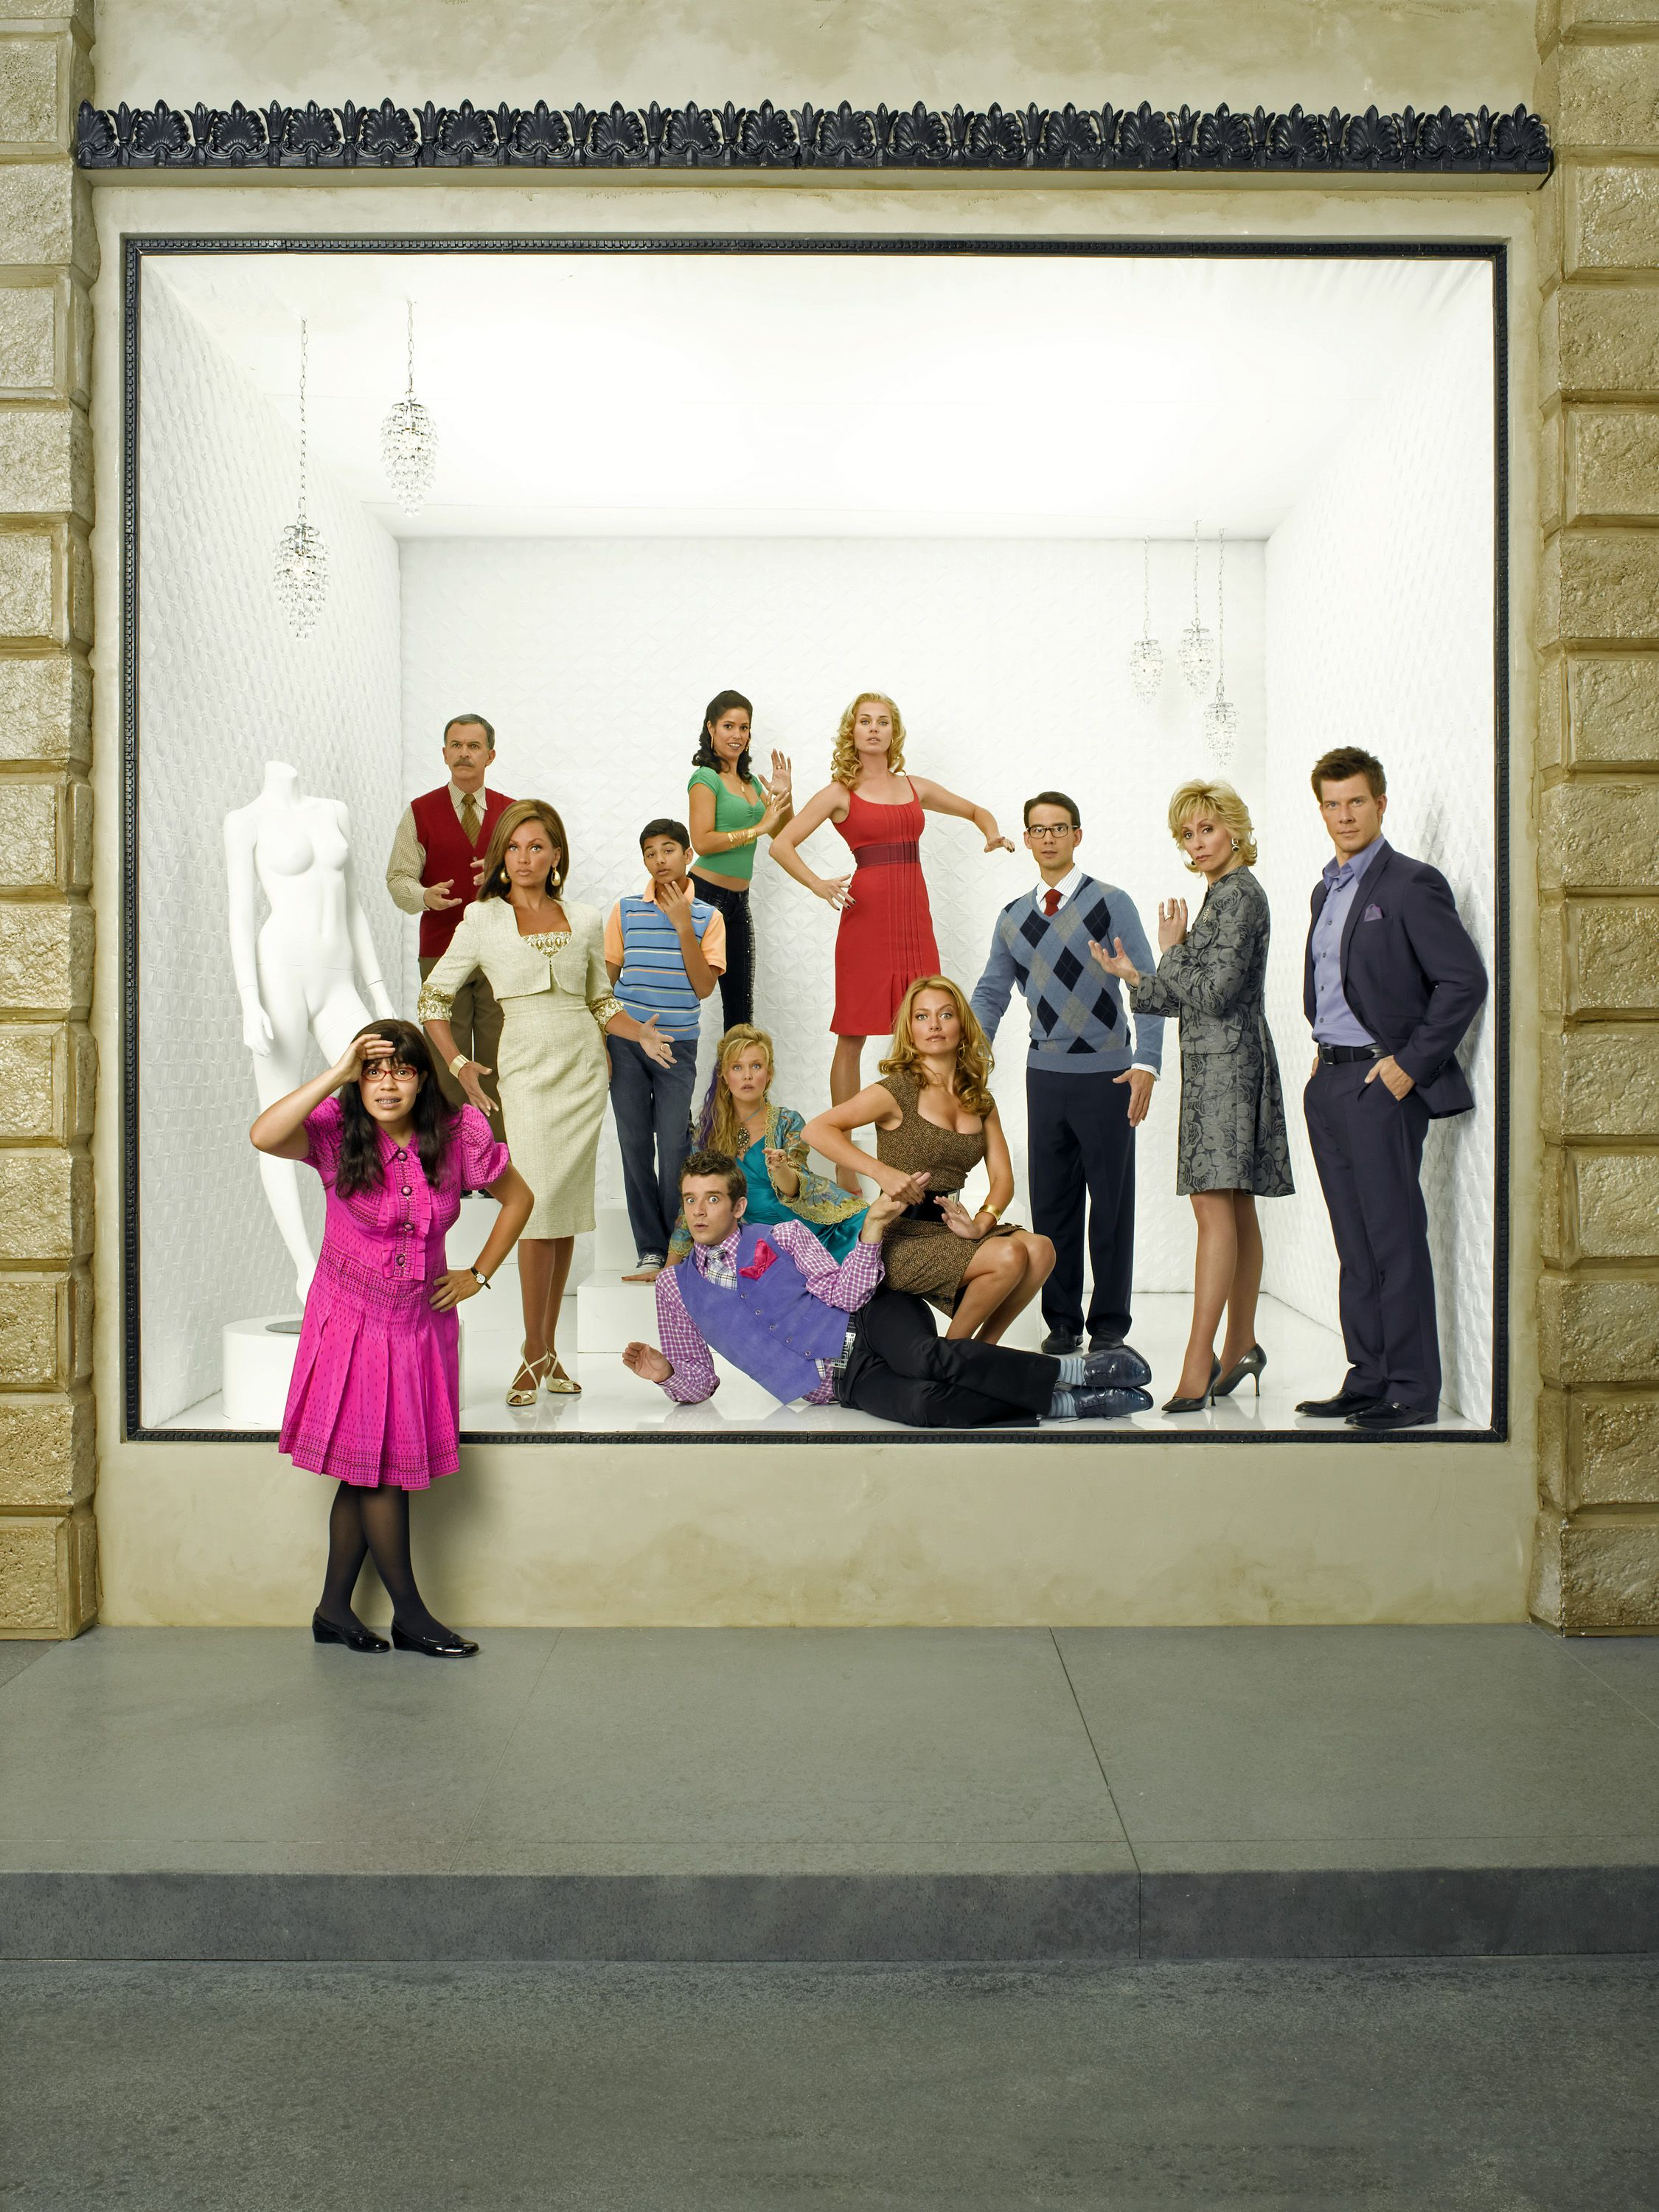 Mode magazine from ugly betty would be a mundane yet exciting fictional TV offices in the fashion industry.